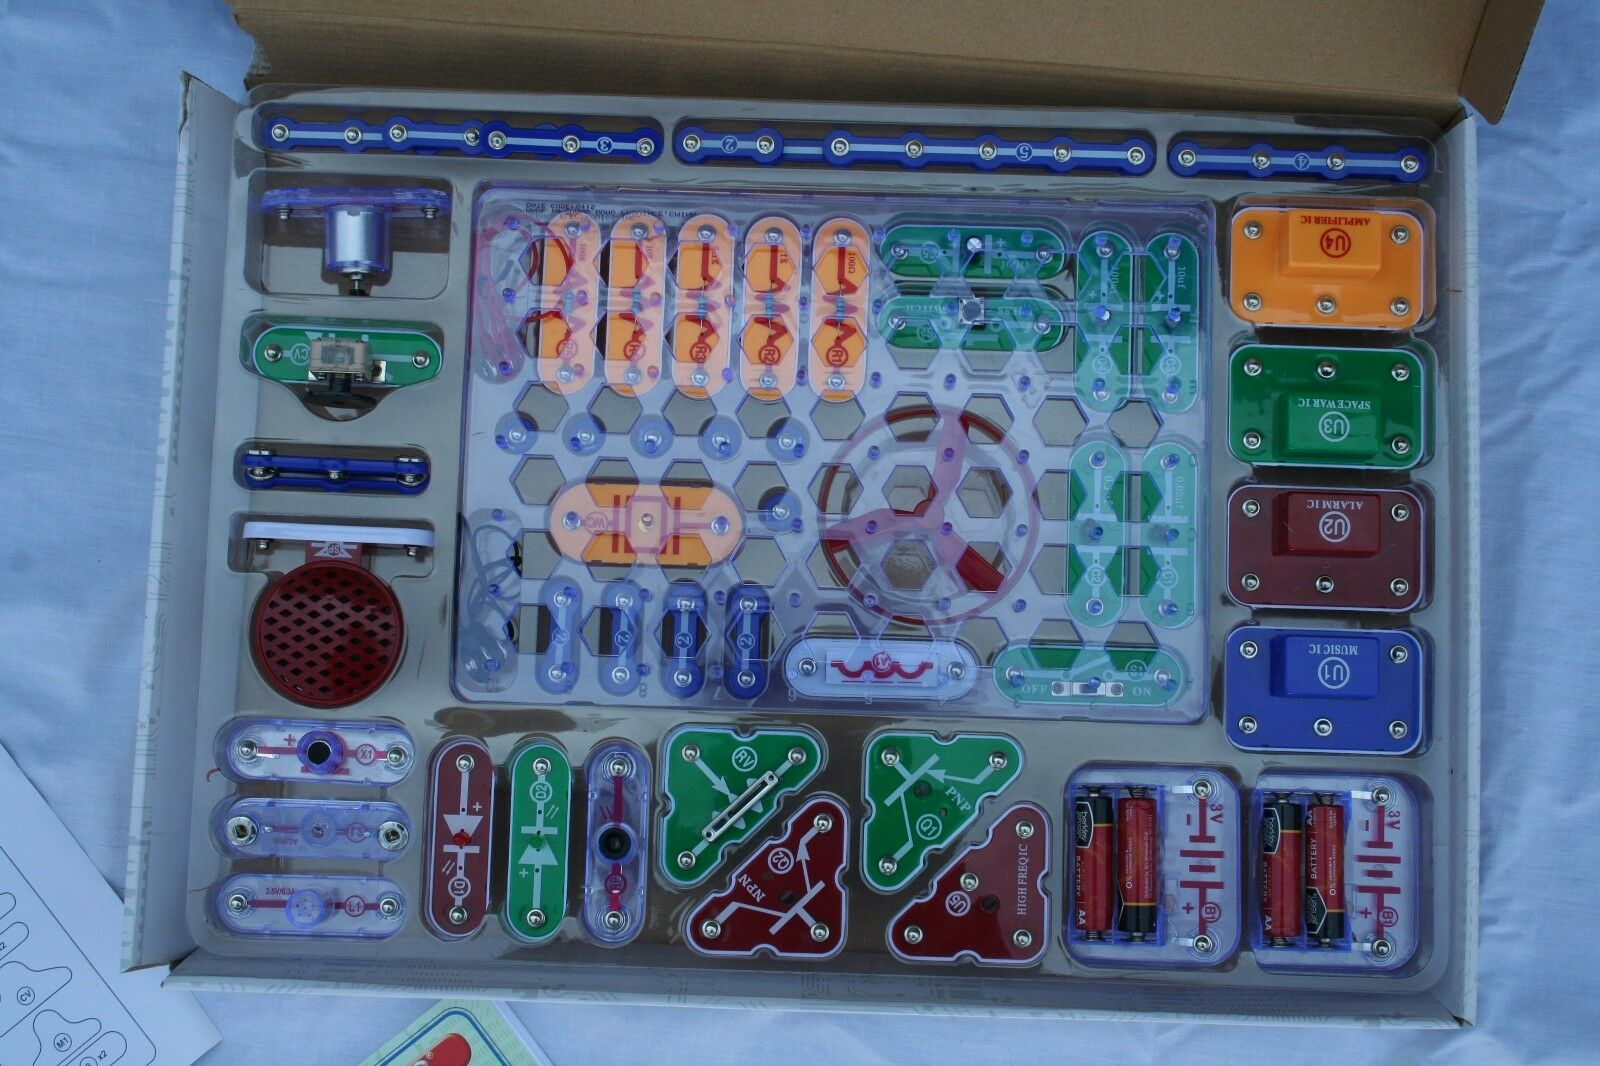 Electronic Snap Circuits Model Sc 300 By Elenco Complete Instruction Manual Hover To Zoom